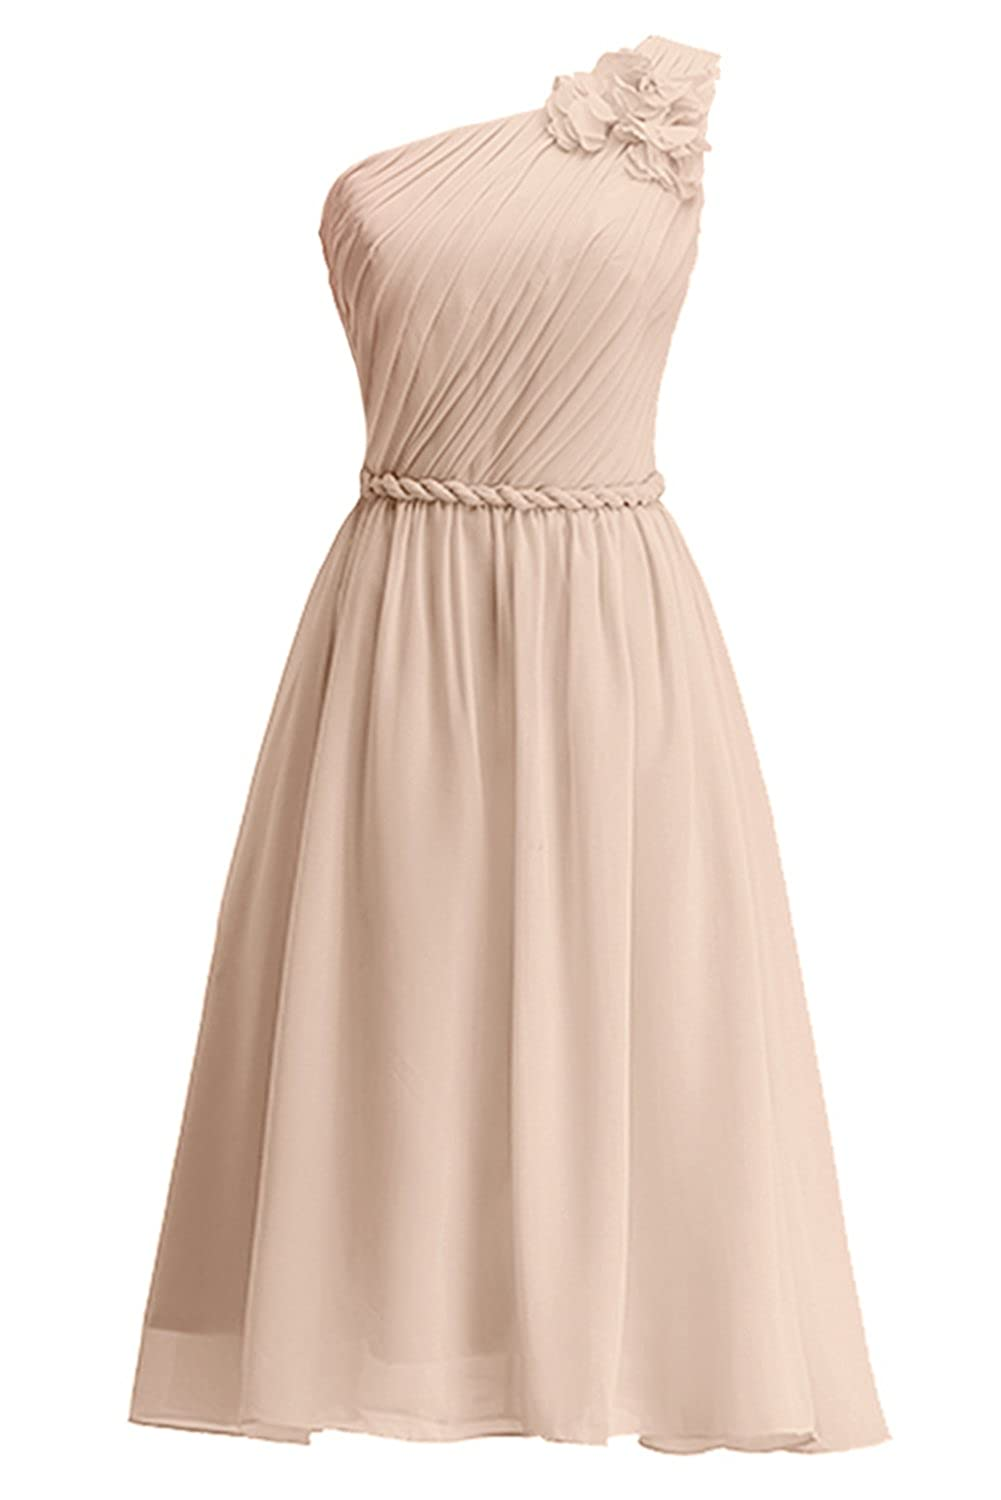 KekeHouse? One Shoulder Floral Knee Long Bridesmaid Dress Sash Short Evening Prom Gown Pleated Mother Daughter Flower Girl's Dress